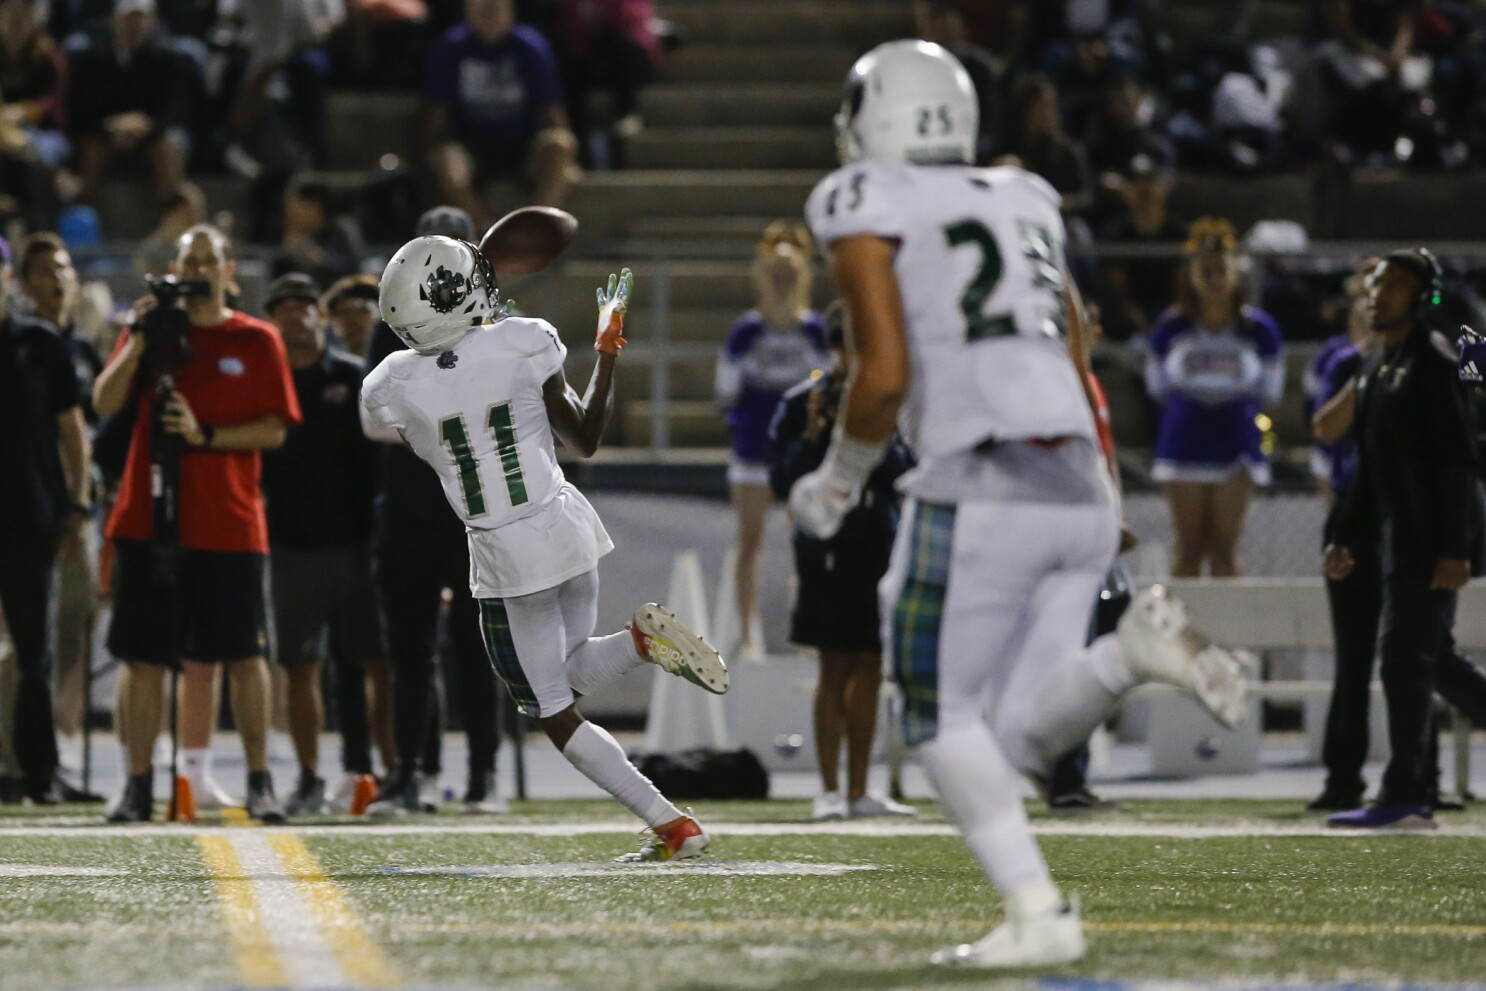 Helix football provides a perfect fit